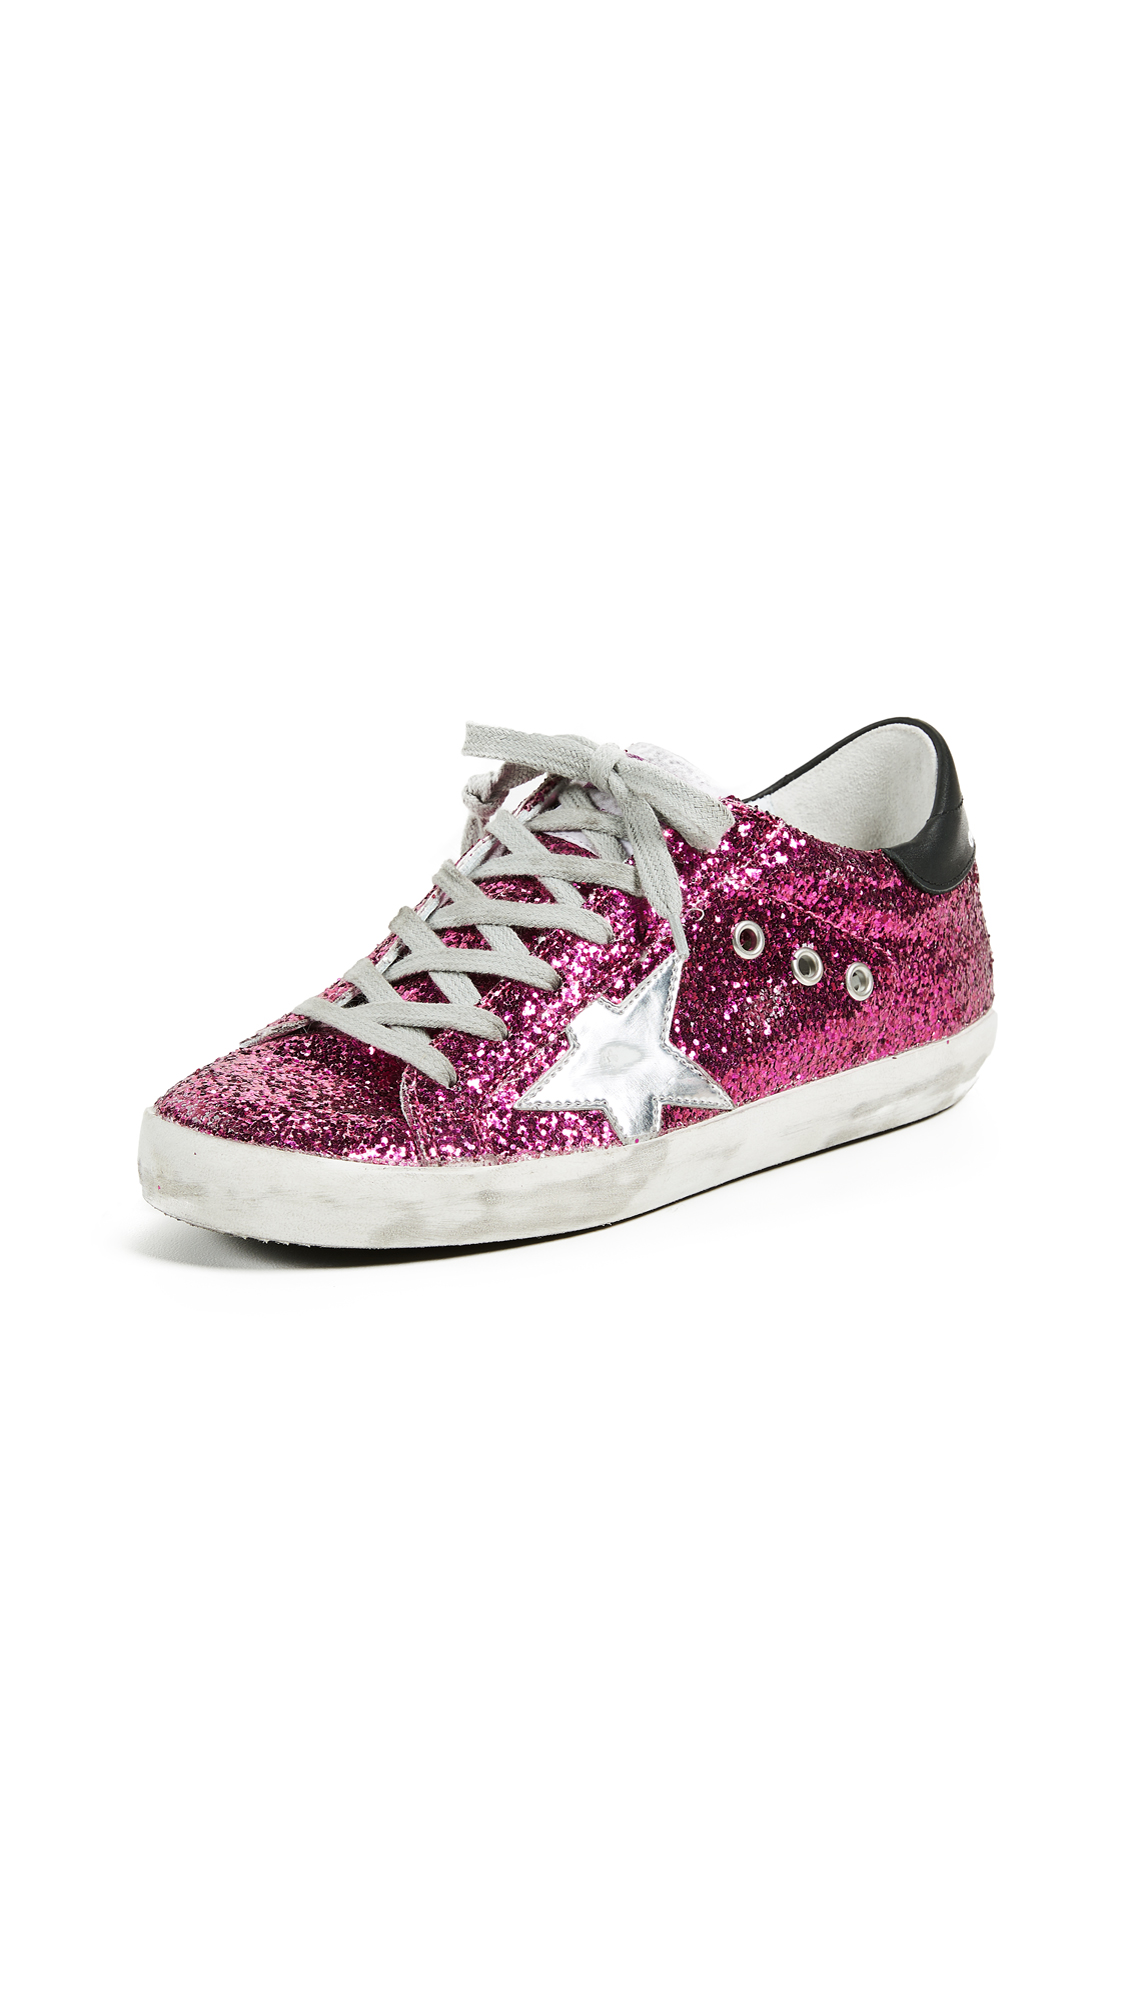 Golden Goose Superstar Sneakers - Cyclamen/Silver